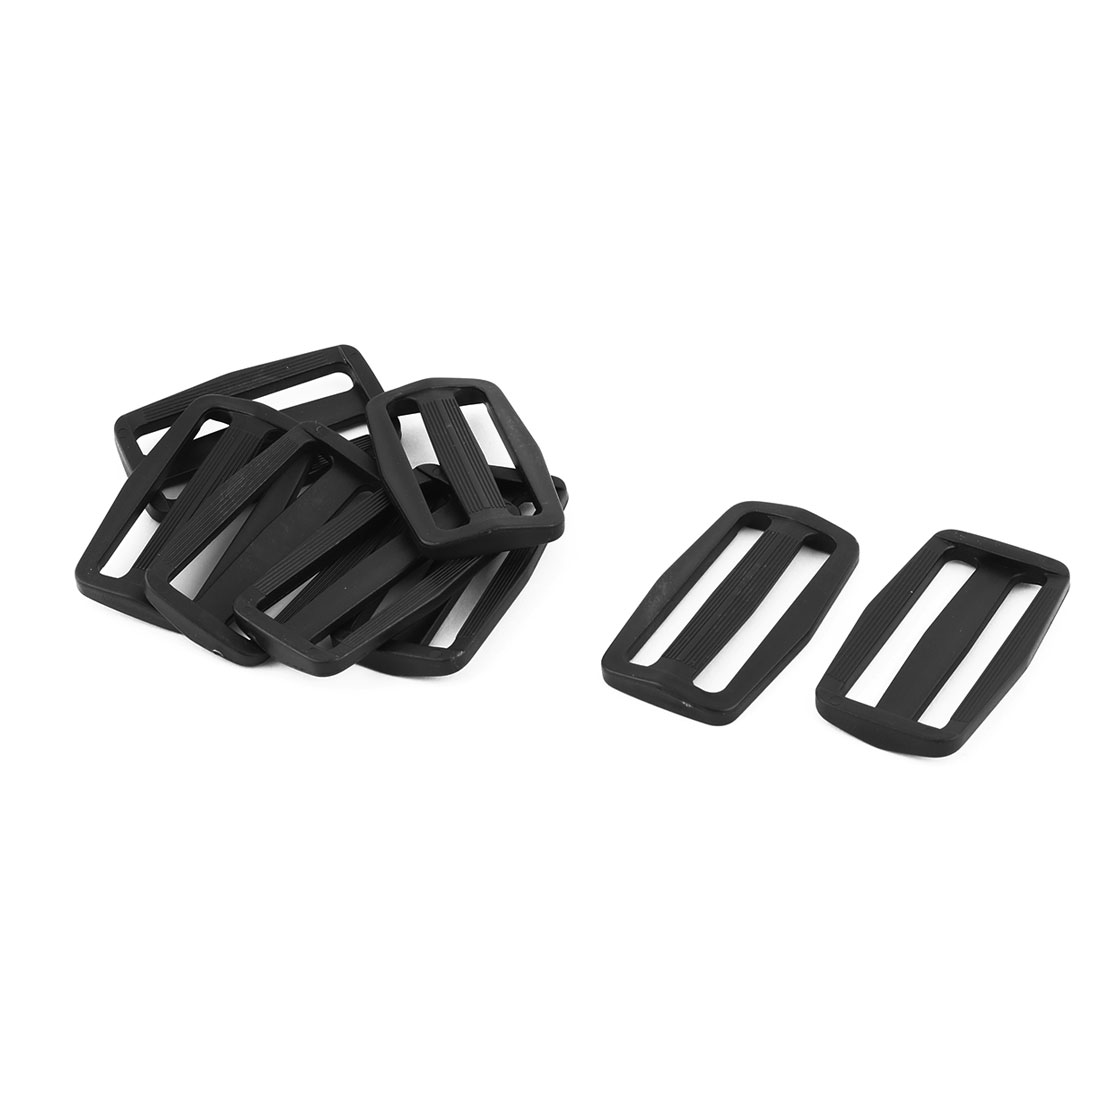 Outdoor Plastic Adjustable Backpack Strap Tri Glide Buckle Black 2.3 Inches Length 8pcs